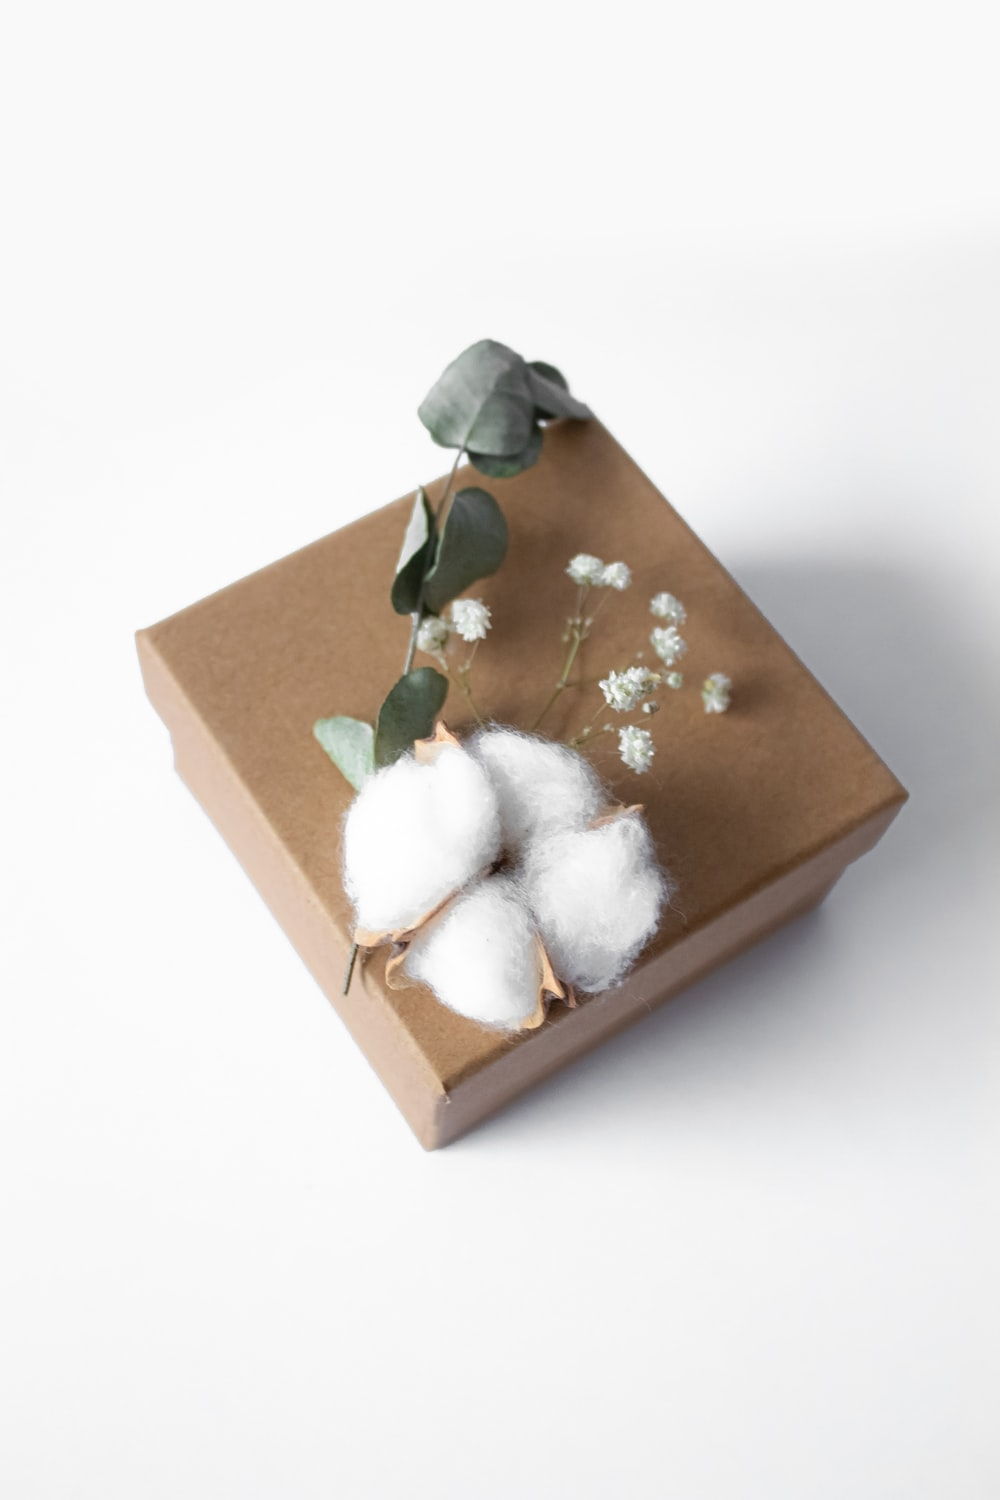 white and gray rabbit plush toy in brown cardboard box